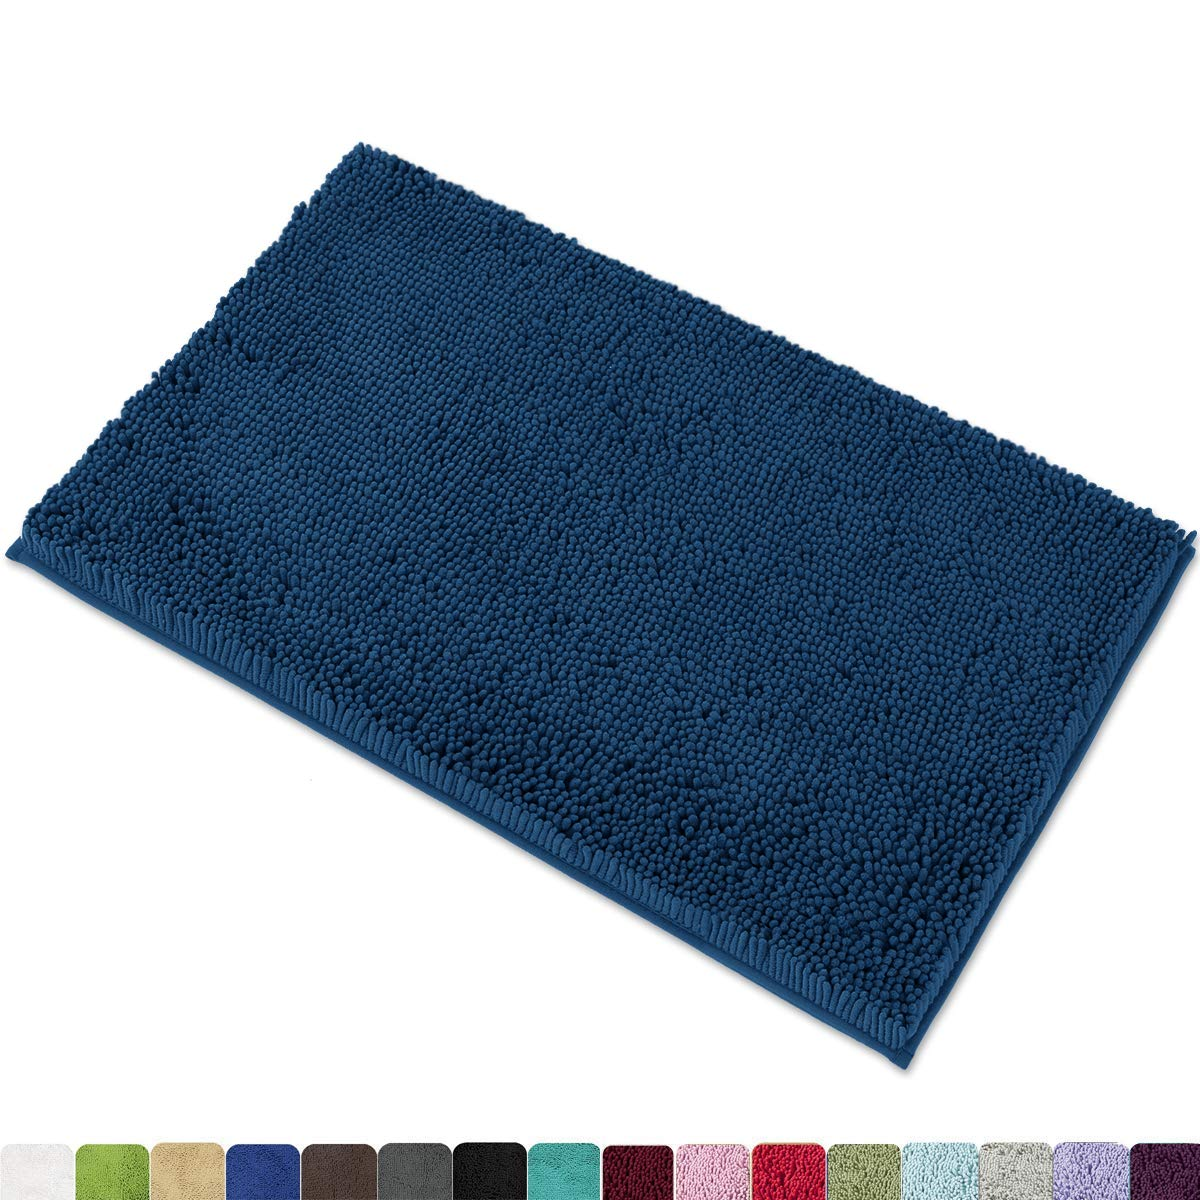 "MAYSHINE Chenille Bath Mat for Bathroom Rugs 32"" x20"", Extra Soft and Absorbent Microfiber Shag Rug, Machine Wash Dry- Perfect Plush Carpet Mats for Tub, Shower, and Room- Dark Blue"